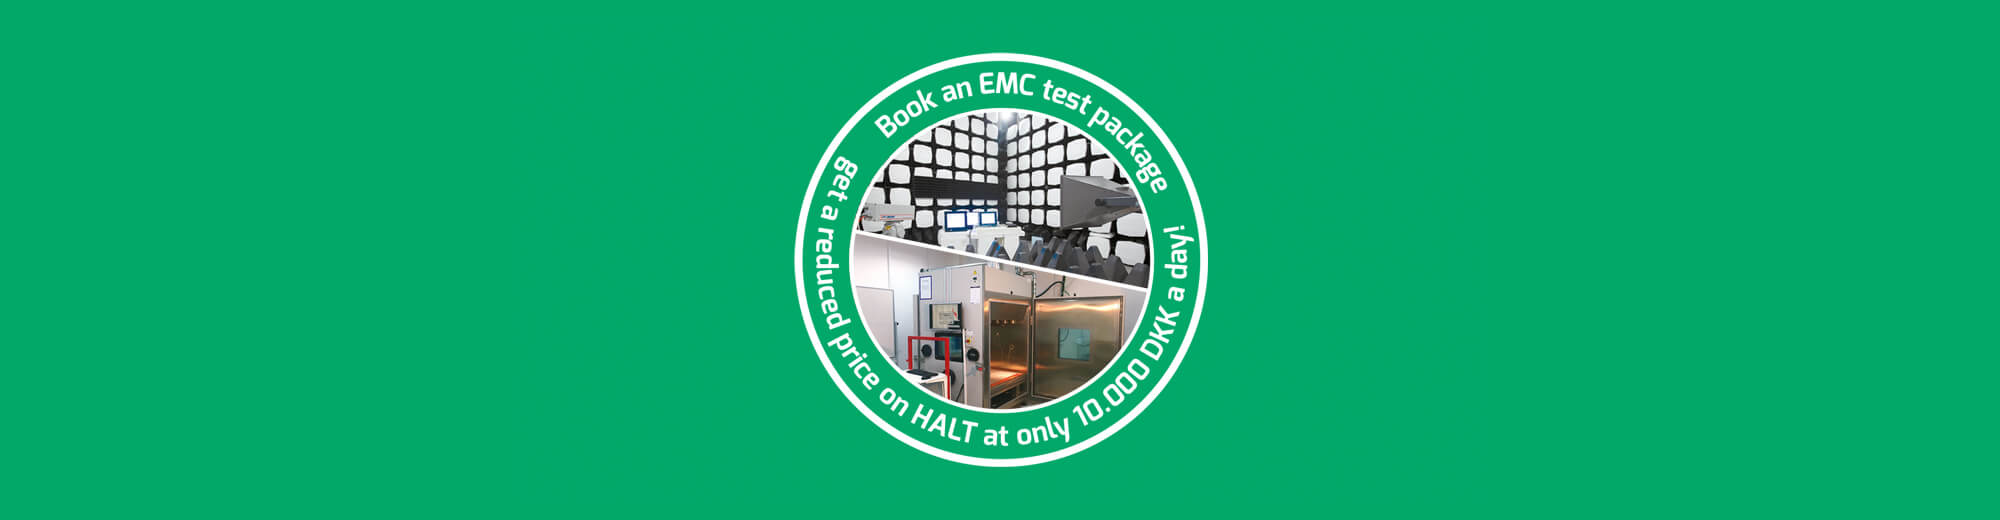 Book an EMC test run and receive an OFFER on HALT for only DKK 10,000 a day!